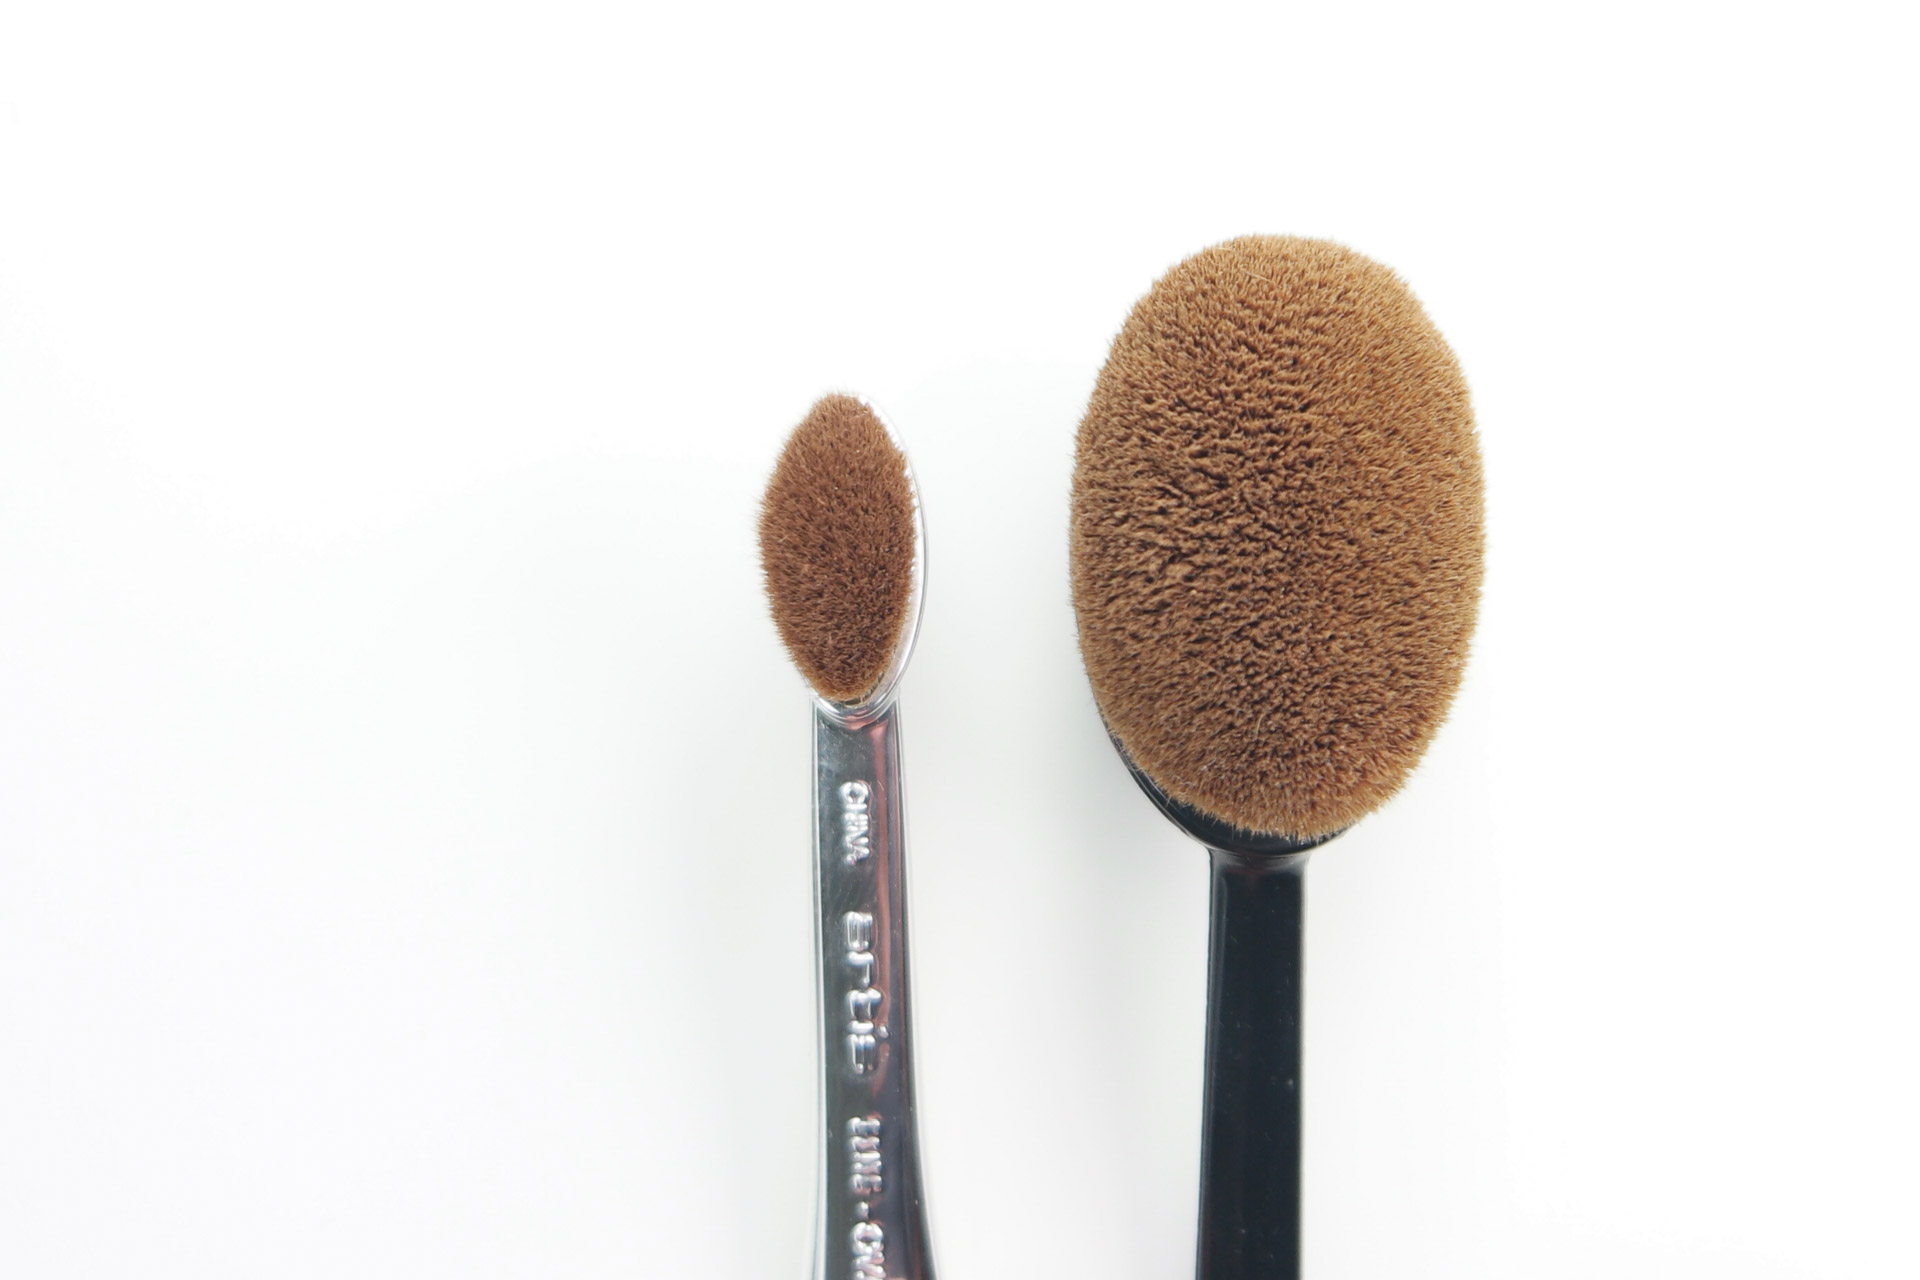 Brushes compared artis oval 3 vs ibeauty 21 a for Brush craft vs artis